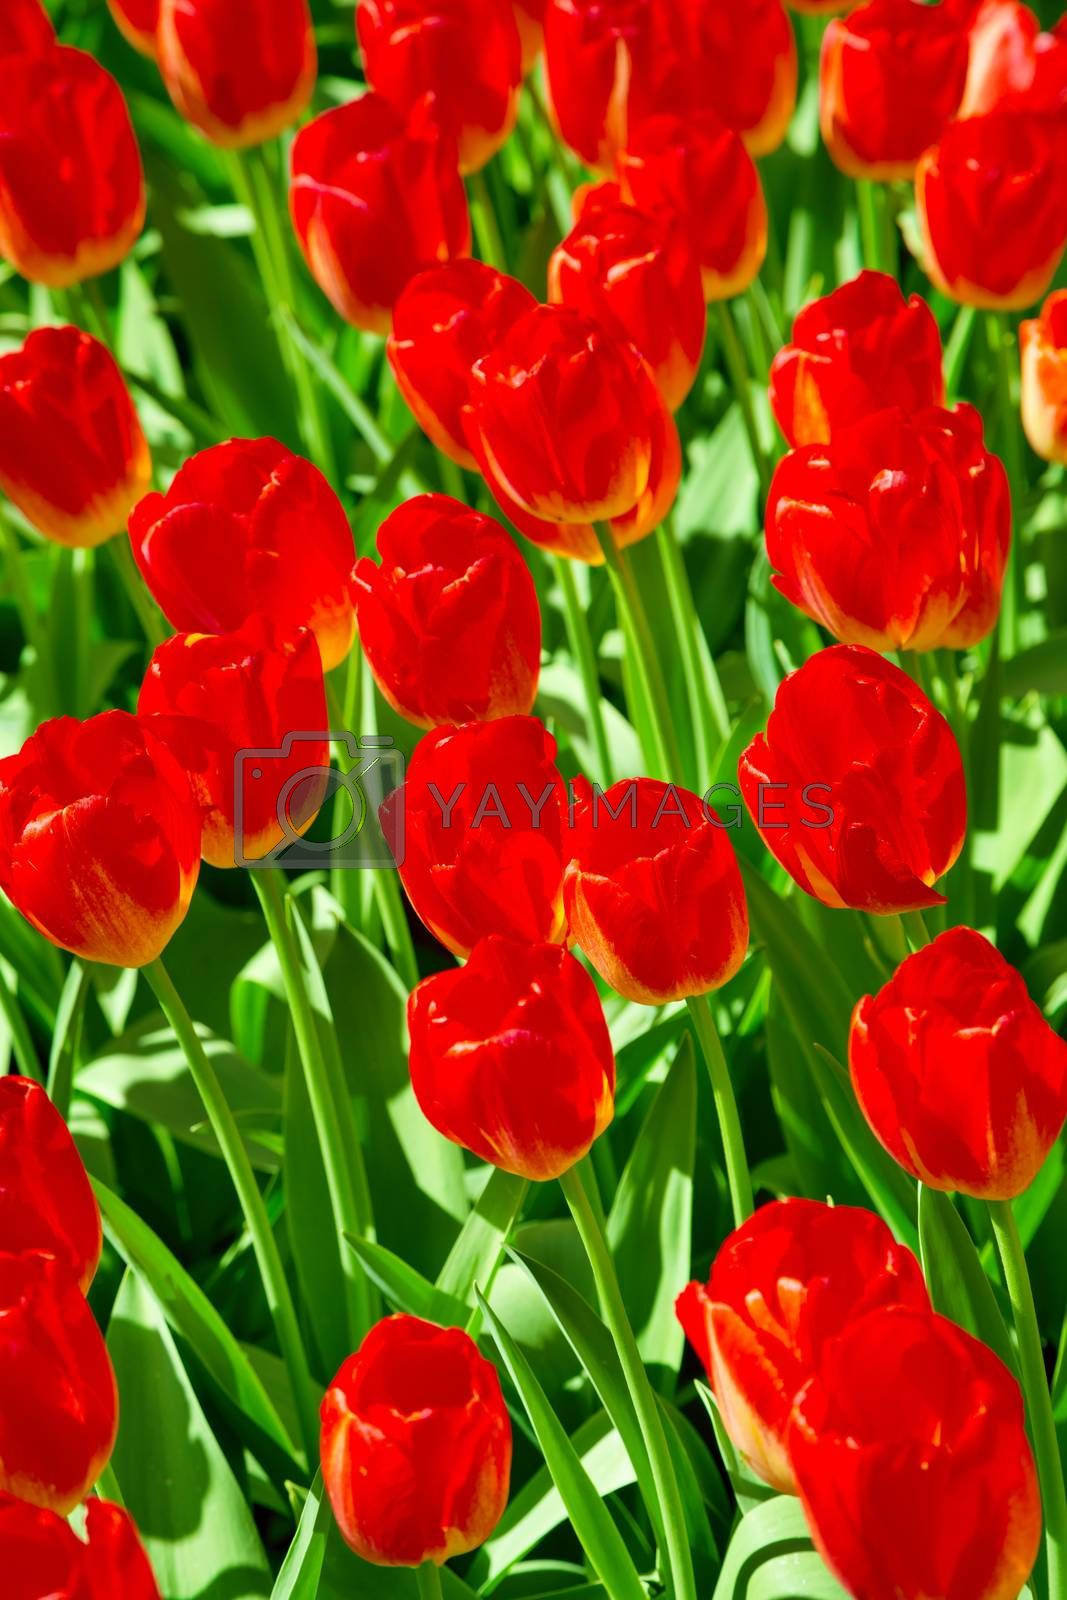 Tulip background. Tulips. Fresh orange tulips field. Taken in closeup with a view from above. Flower field of colourful tulips in spring. Keukenhof garden, Netherlands. Group of blooming red tulips.